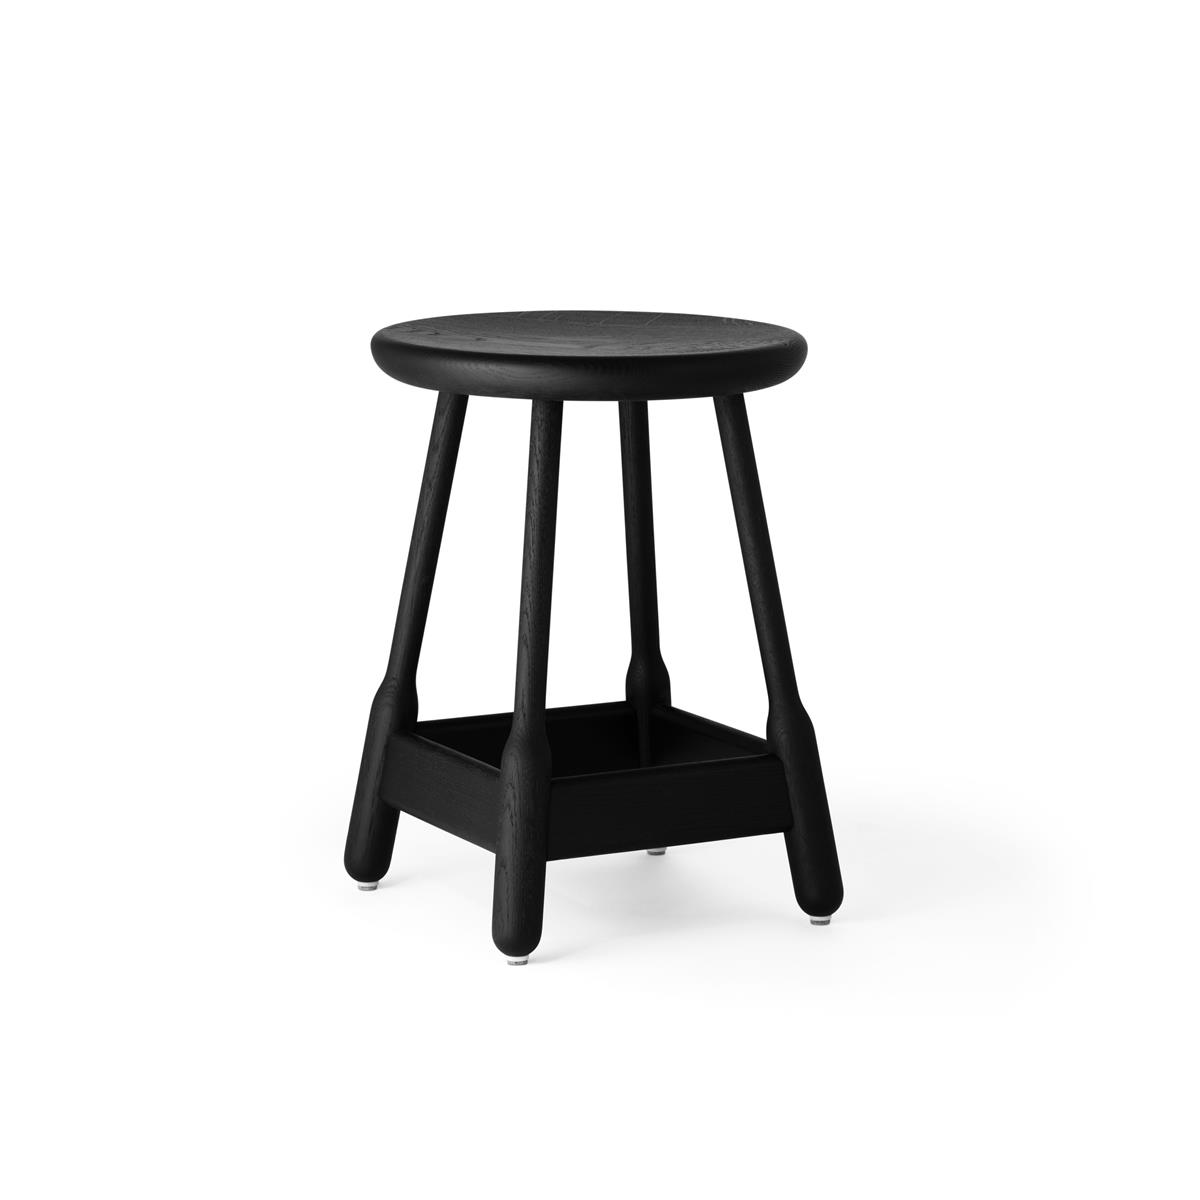 Albert Stool H50 - Black Stained Oak